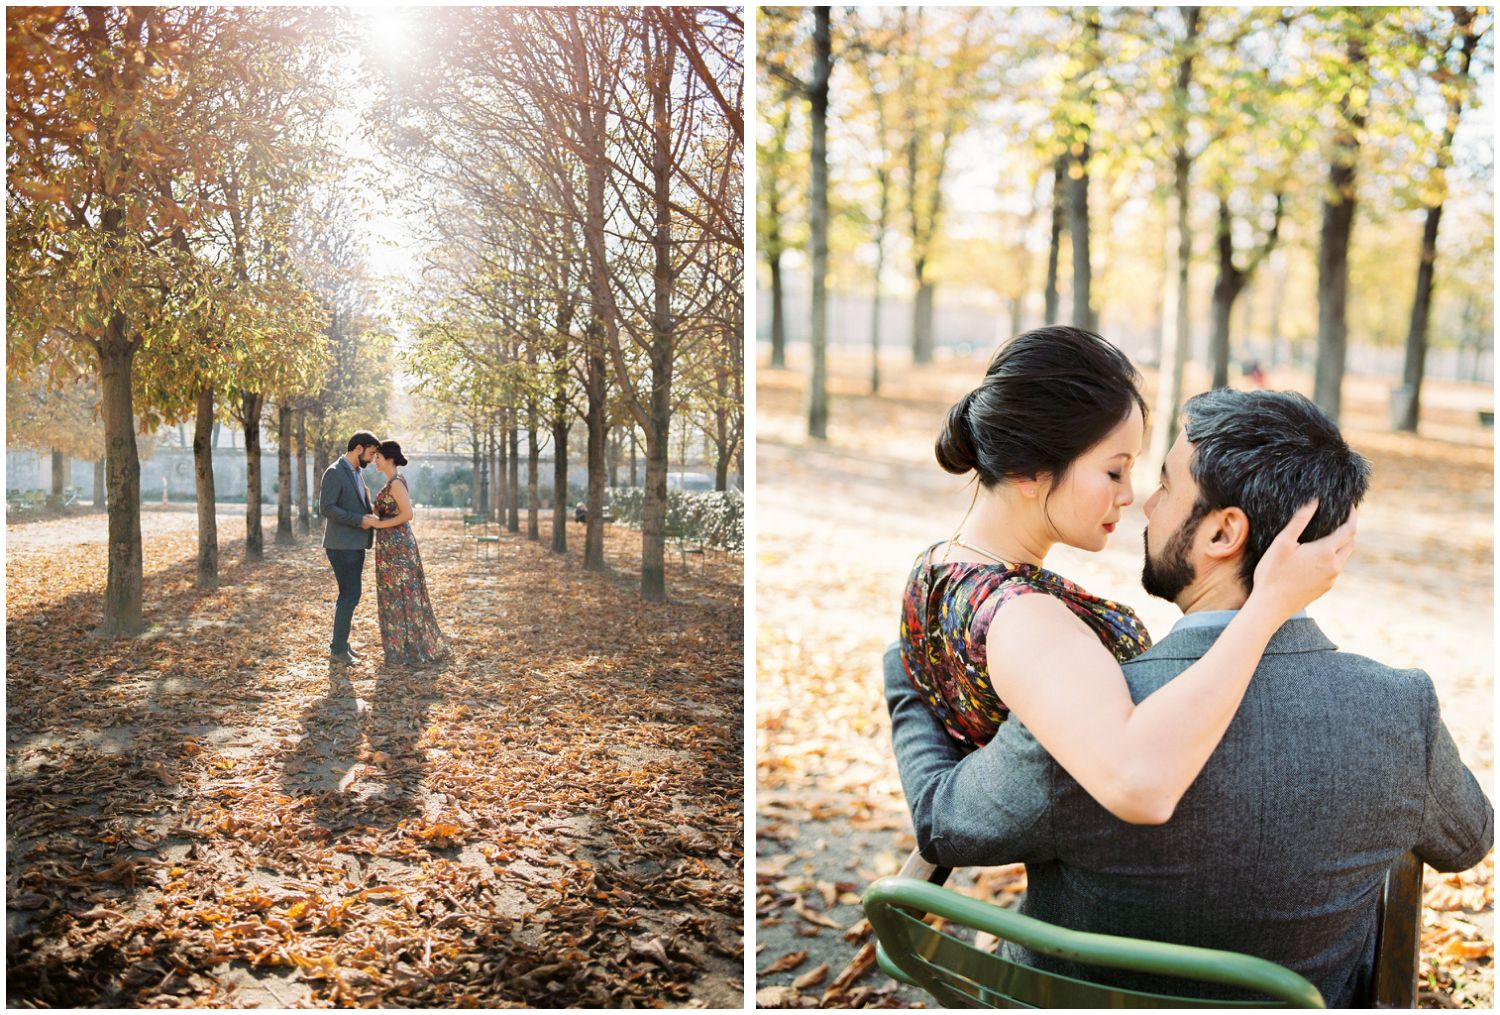 Paris engagement photo in Tuileries garden